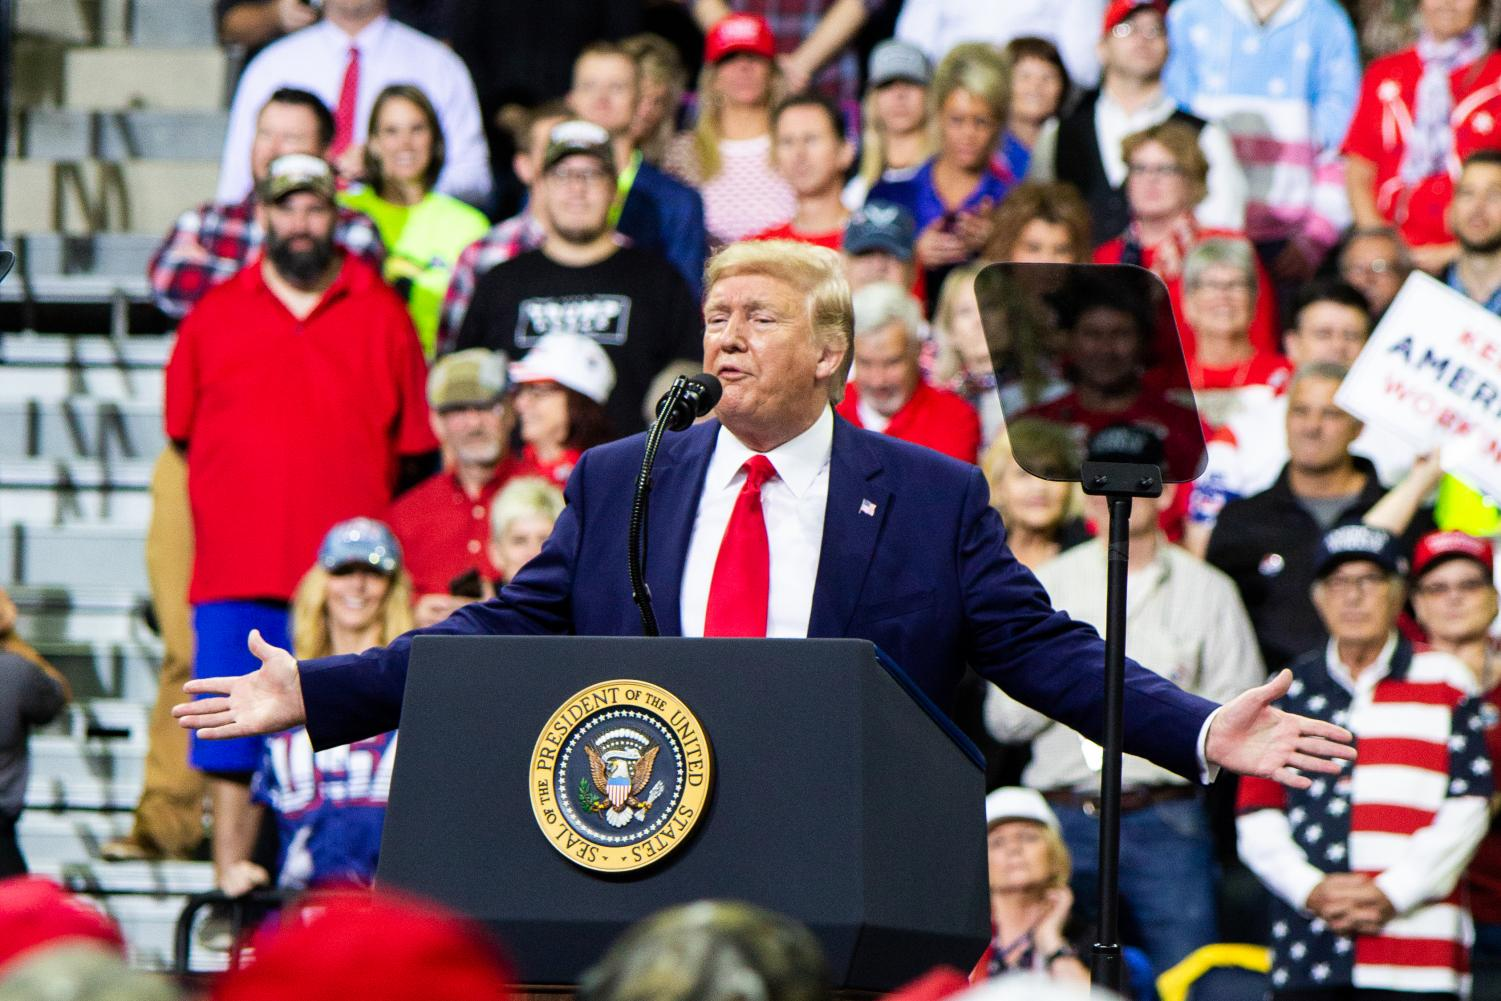 President Donald Trump addresses the crowd at Target Center in Minneapolis, Minnesota, for his 2020 presidential campaign rally on October 10, 2019. Trump continues to campaign despite the impeachment process beginning. The Senate began hearing testimonies this week.